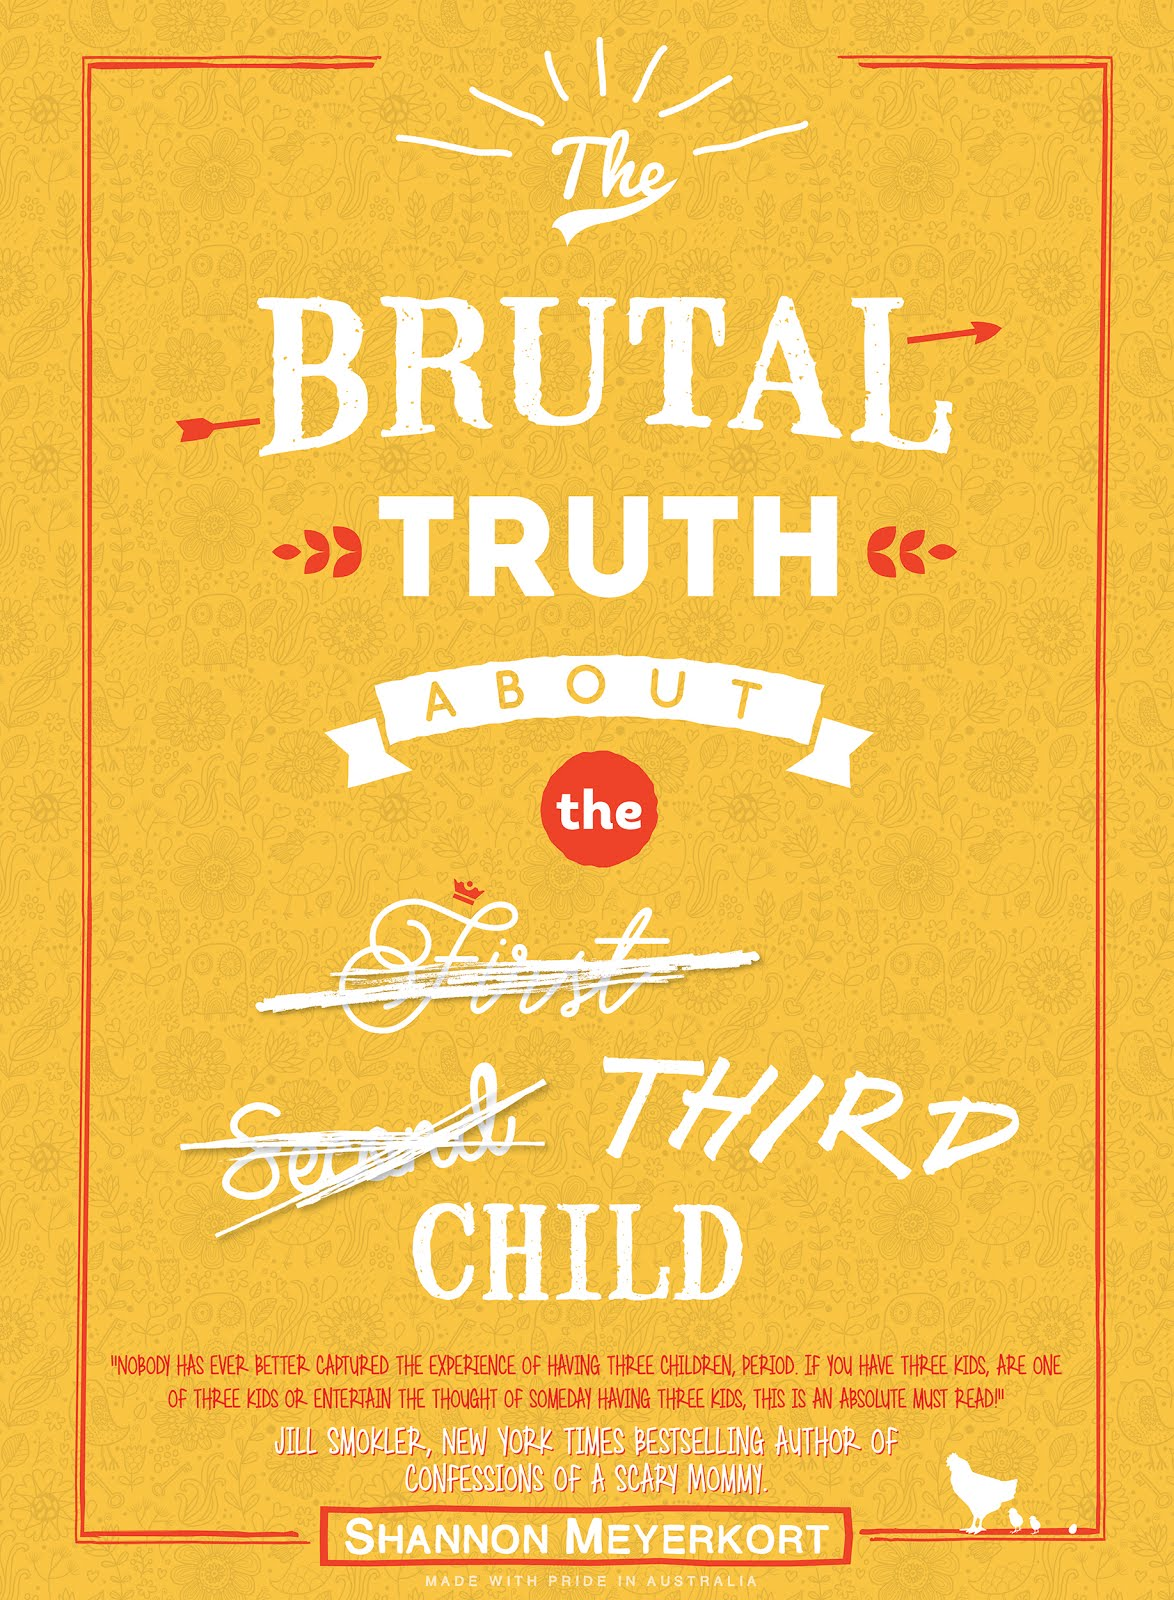 'The Brutal Truth About The Third Child' eBook now available on Amazon